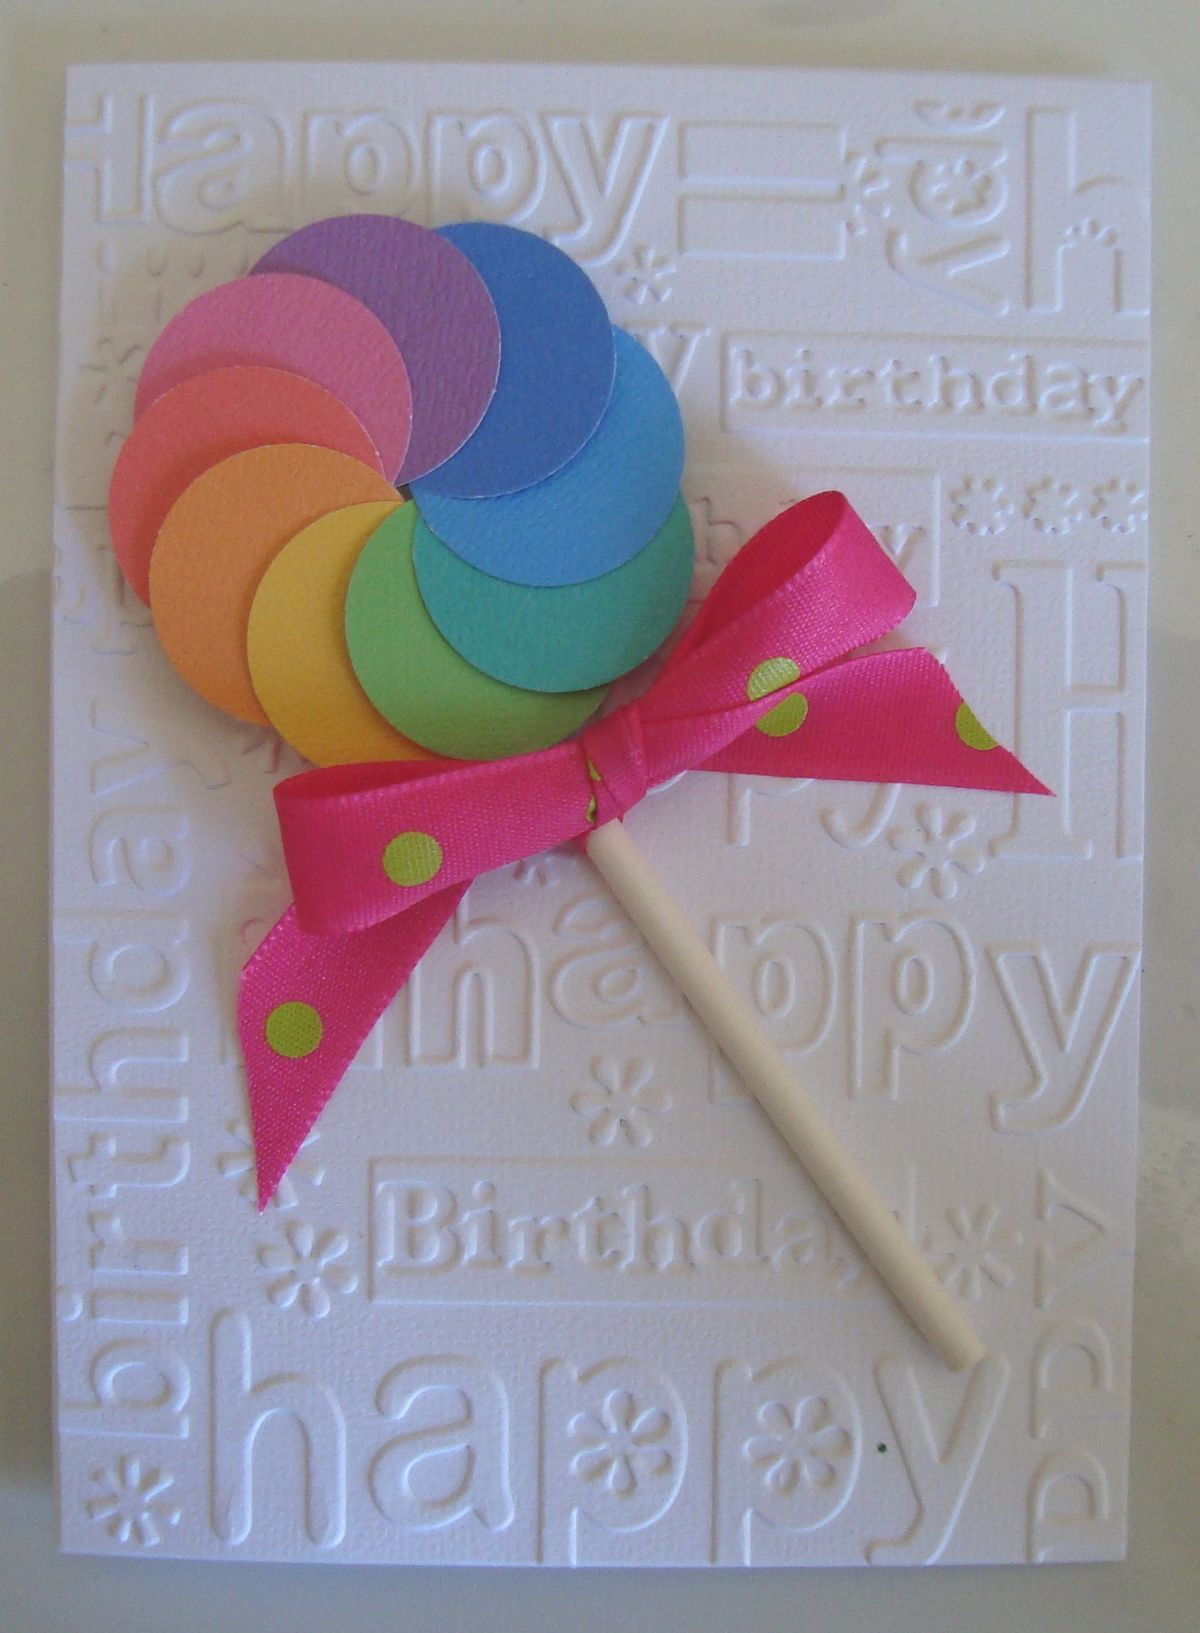 Pin By Cindy Miller On Cards In 2018 Pinterest Cards Birthdays